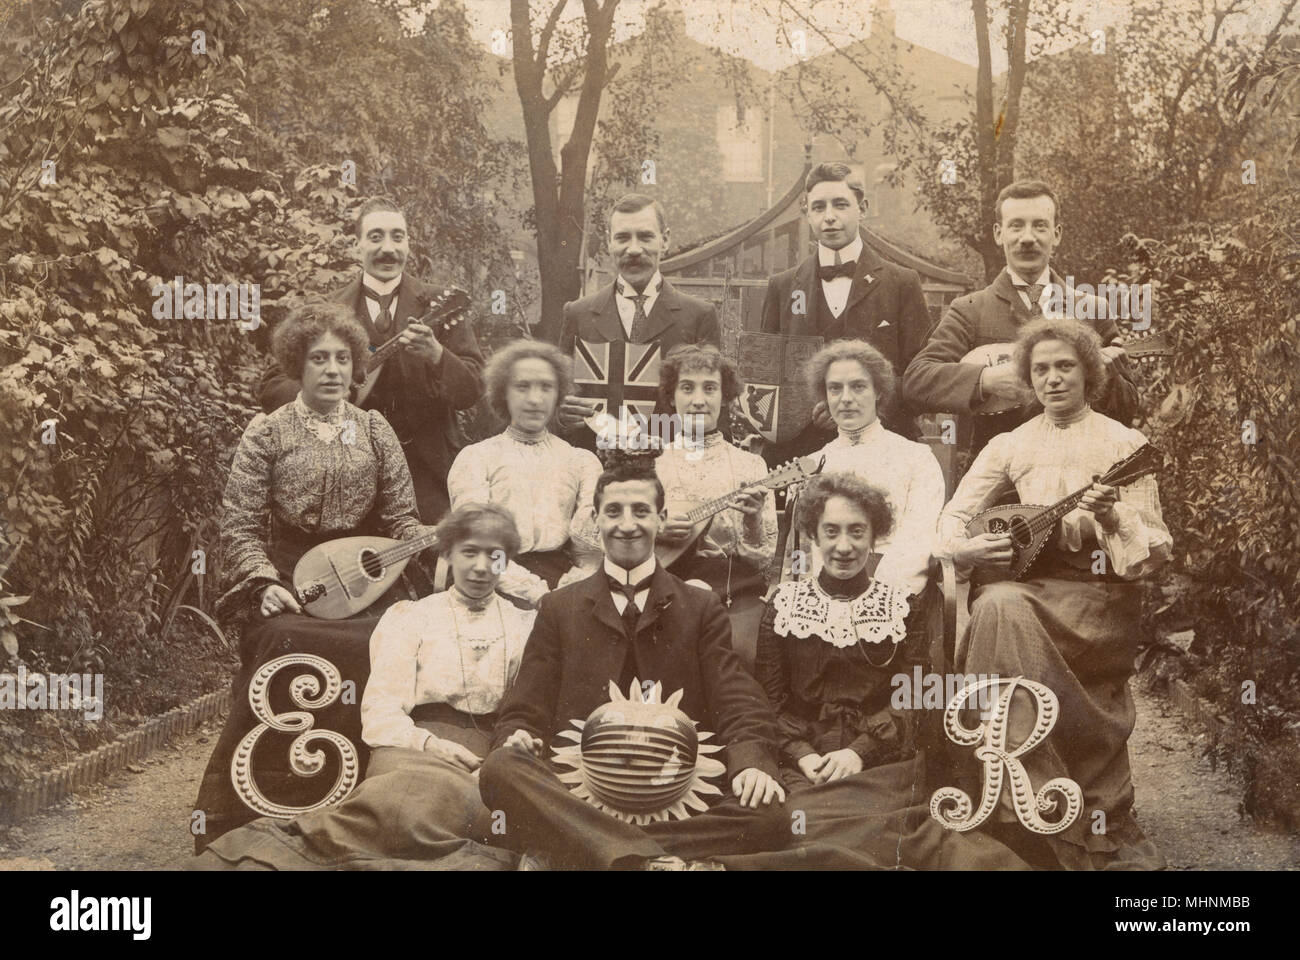 A superb photograph, showing members of a mandolin orchestra (consisting primarily of instruments from the mandolin family of instruments, such as the mandolin, mandola, mandocello and mandobass or mandolone), pictured on 9th August 1902 (when Mandolin orchestras were at the height of their popularity) celebrating the Coronation of king Edward VII. Mandolin orchestras were very popular in the early 20th Century and every city and town and many schools had one. It shows the importance of music as a creative pursuit for the people and communities of this era, and the strength of this should not Stock Photo